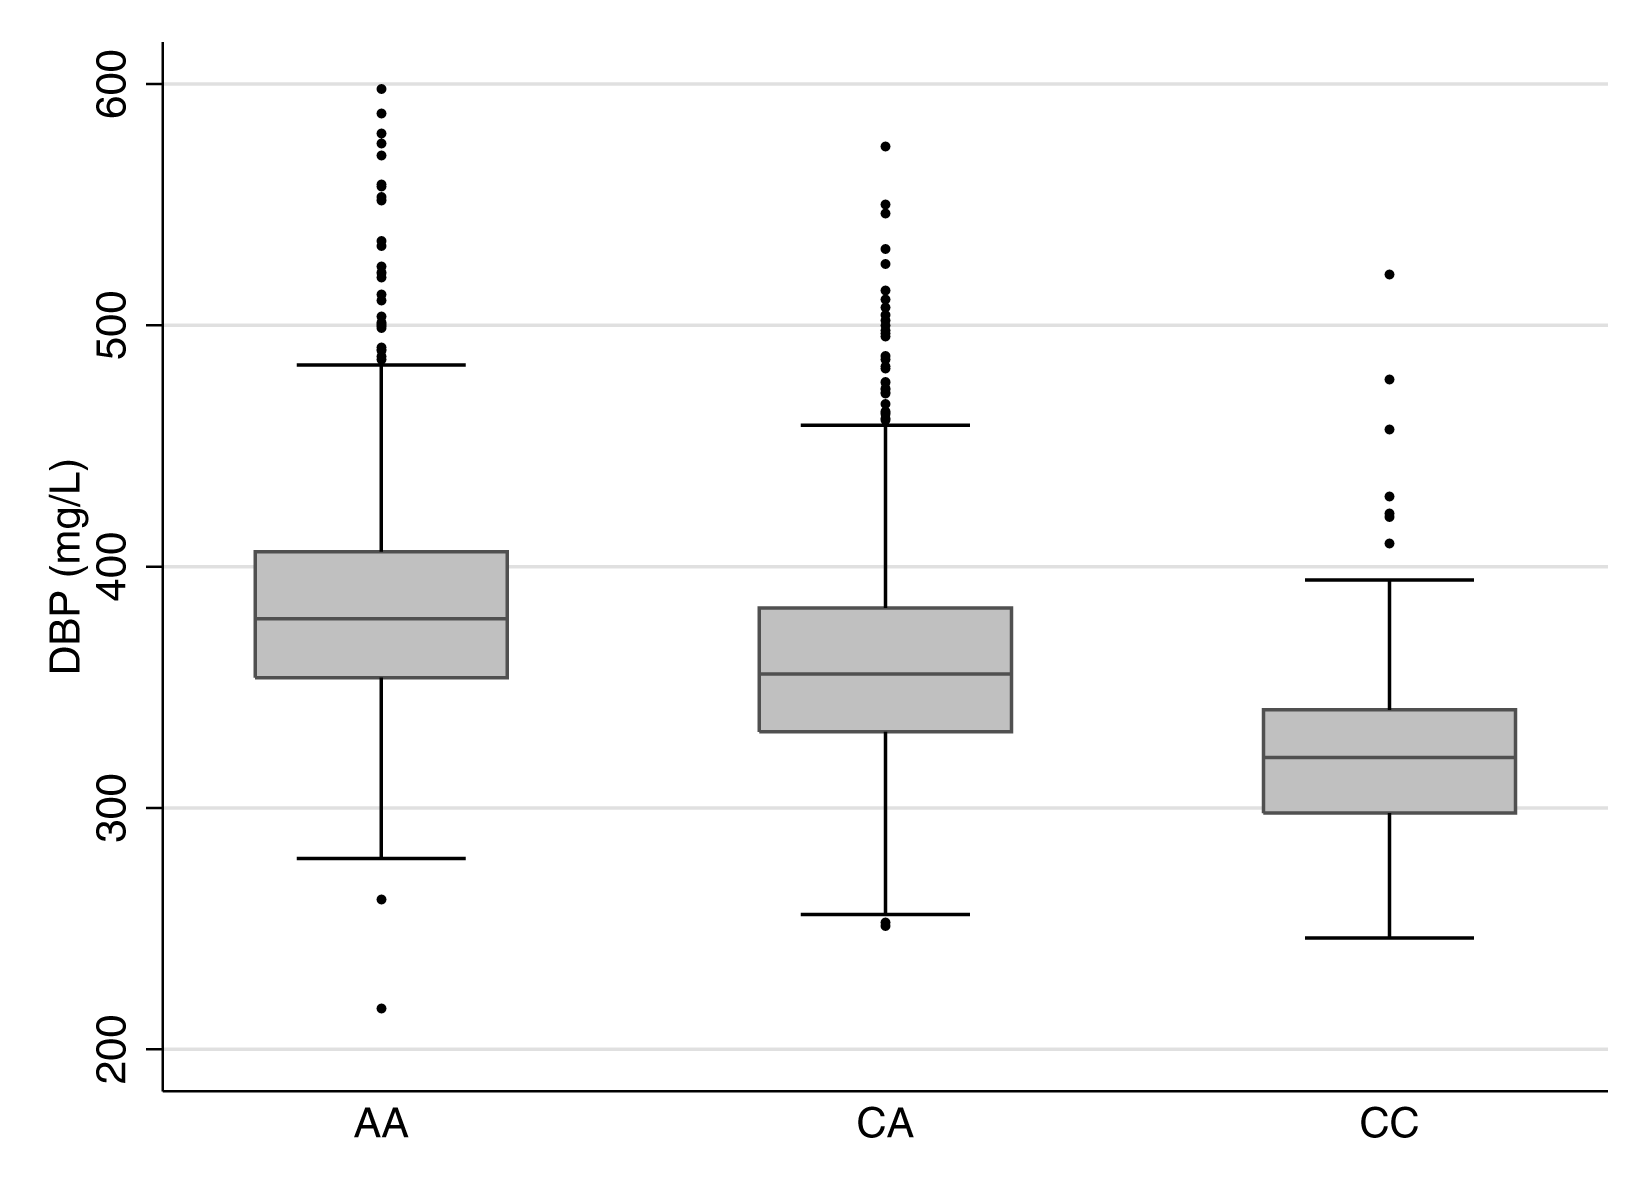 Boxplot of vitamin D binding protein levels by rs2282679 genotype.